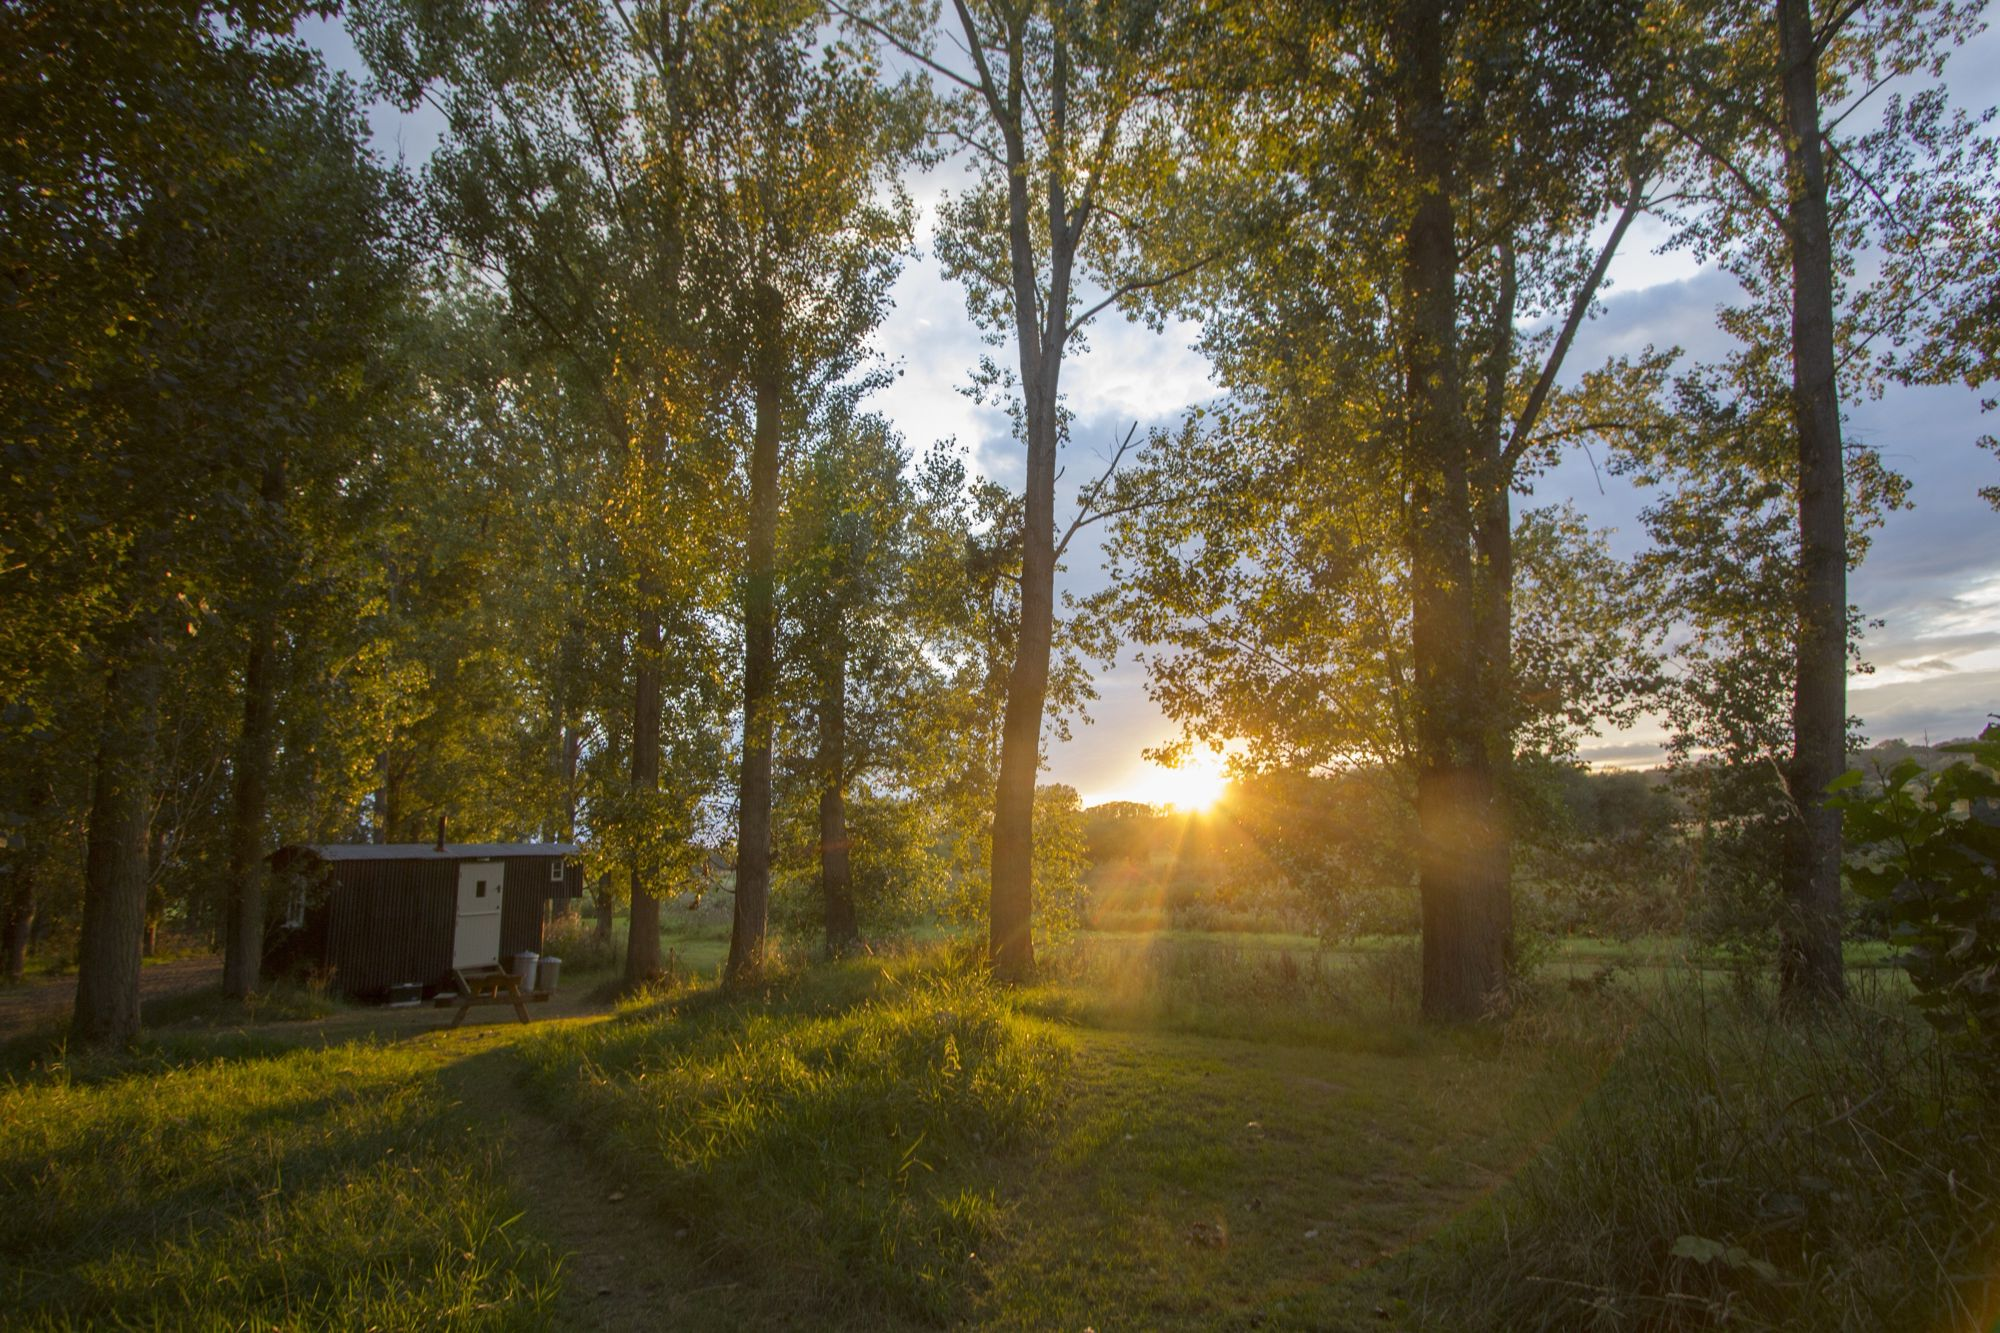 Glamping in Bodiam holidays at Cool Camping